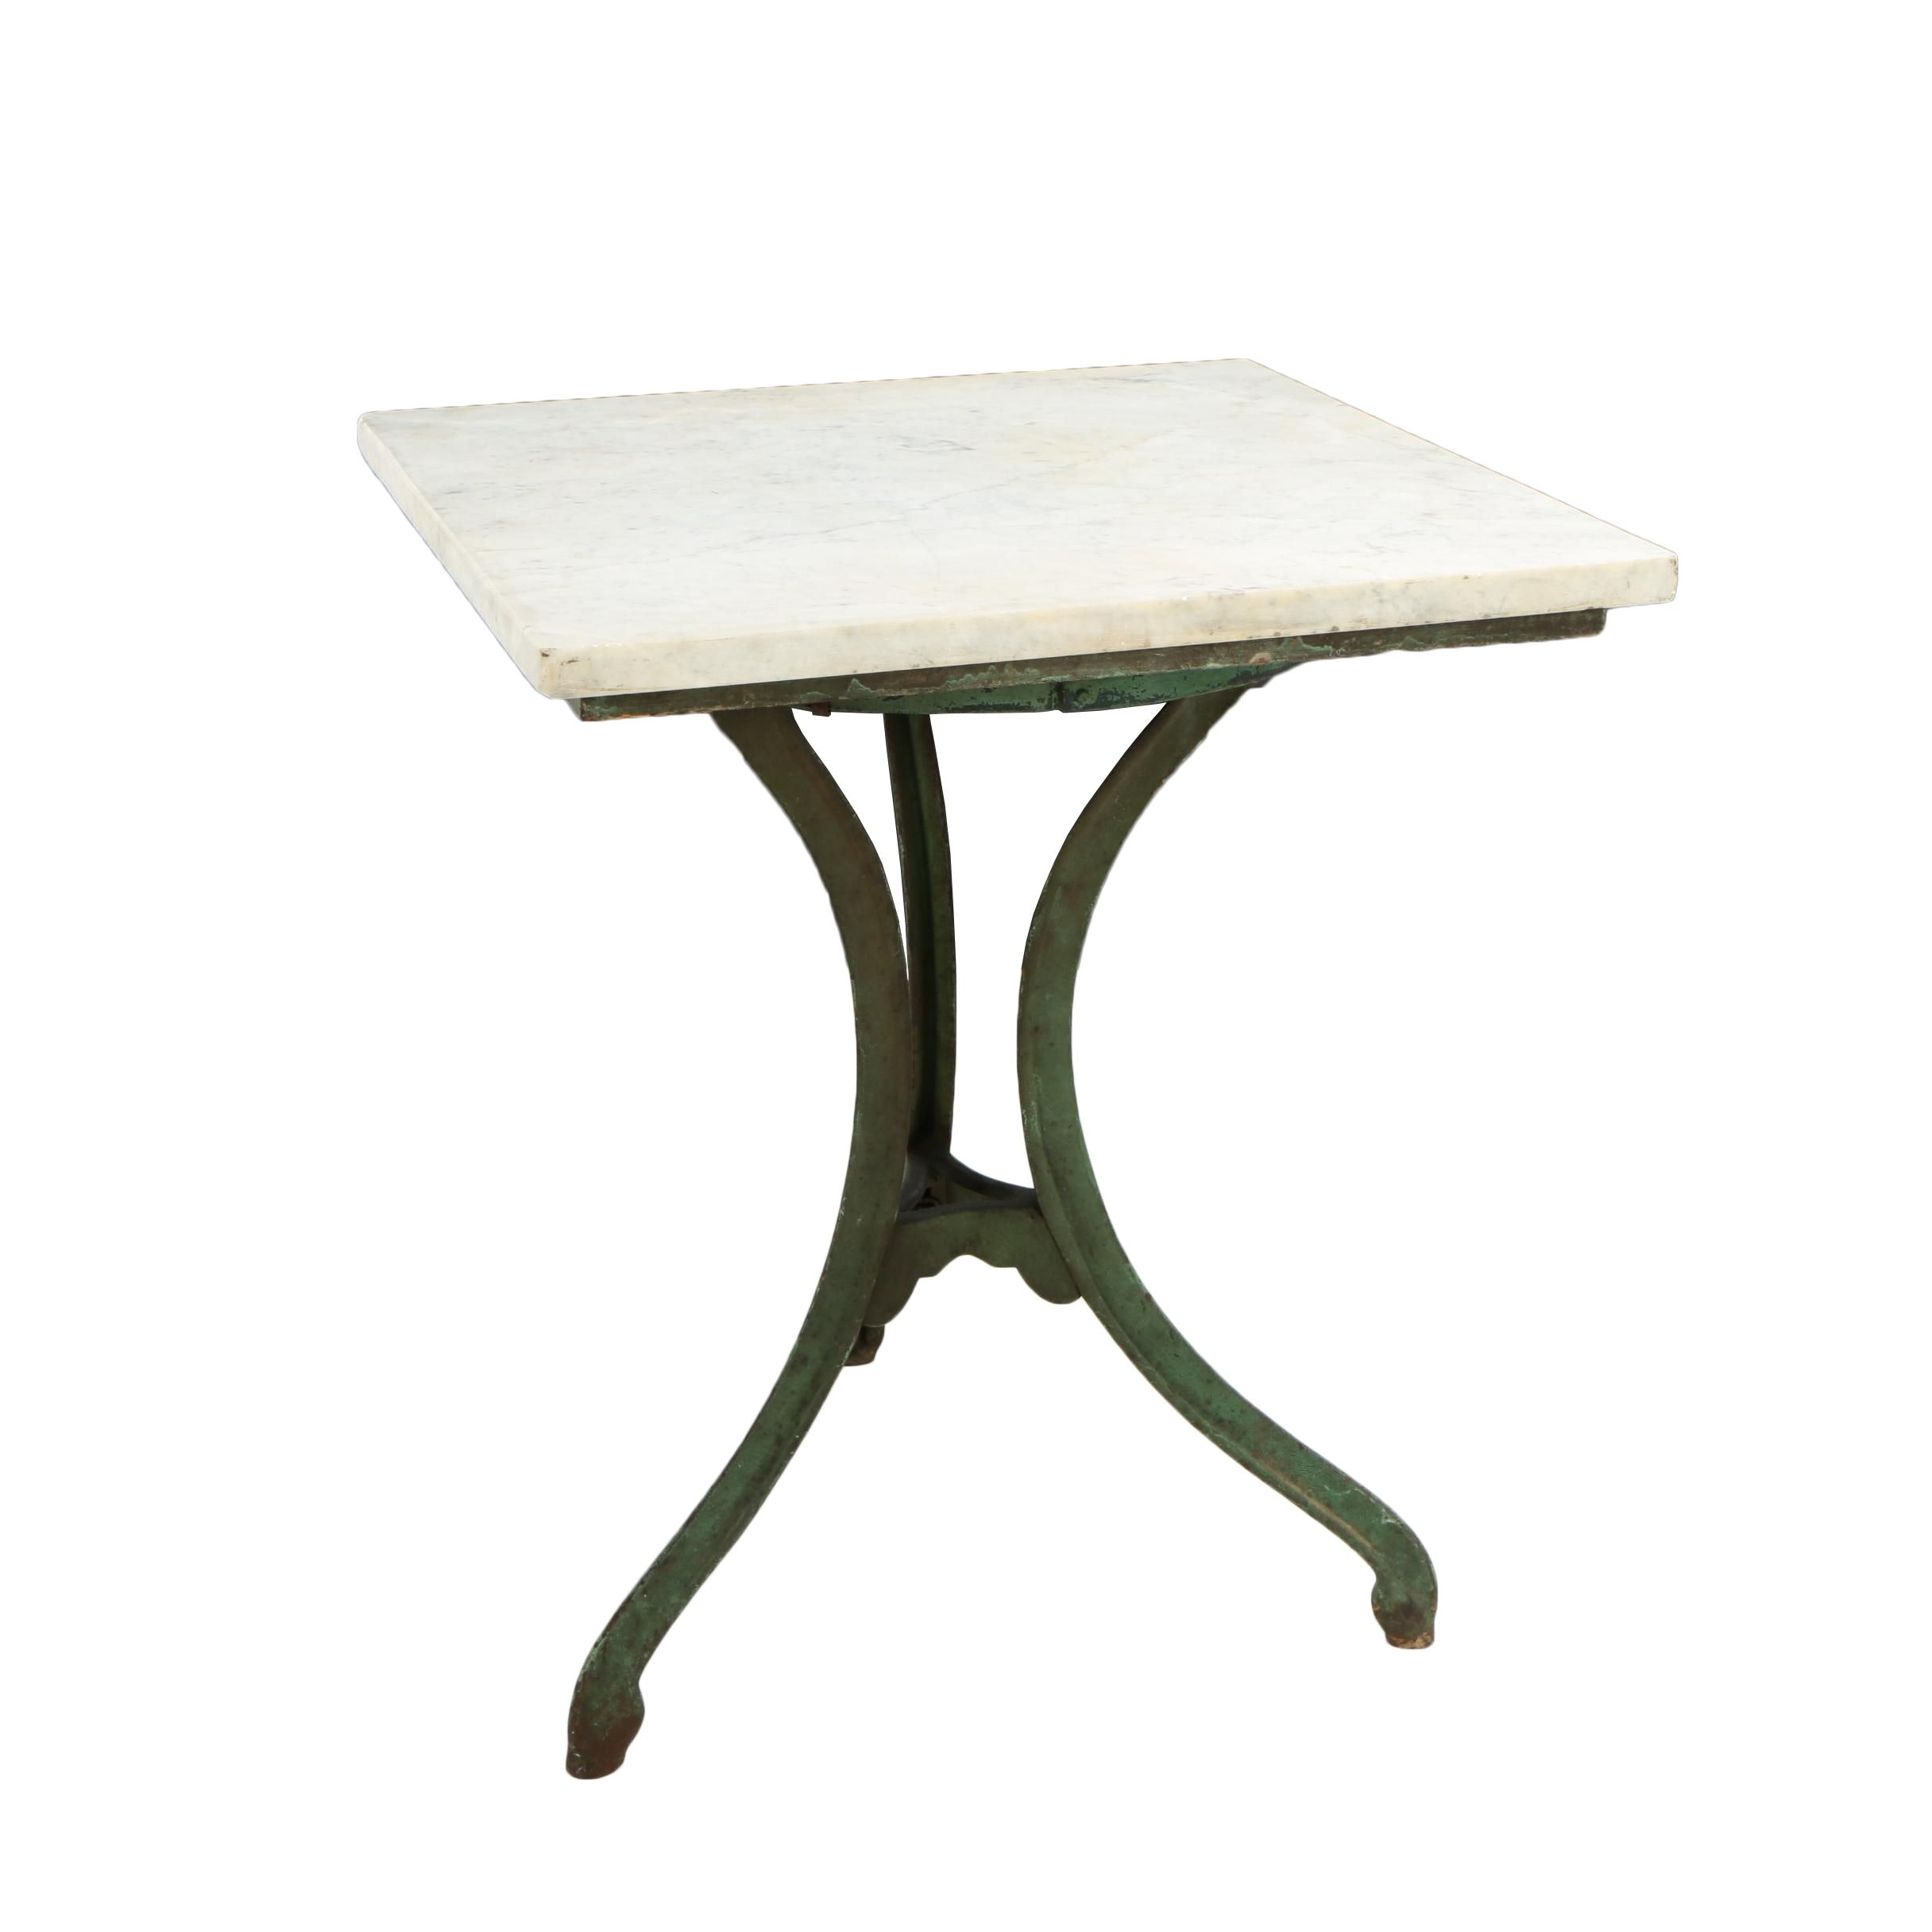 Green-Painted Iron and White Marble Garden Table, Late 19th/Early 20th Century